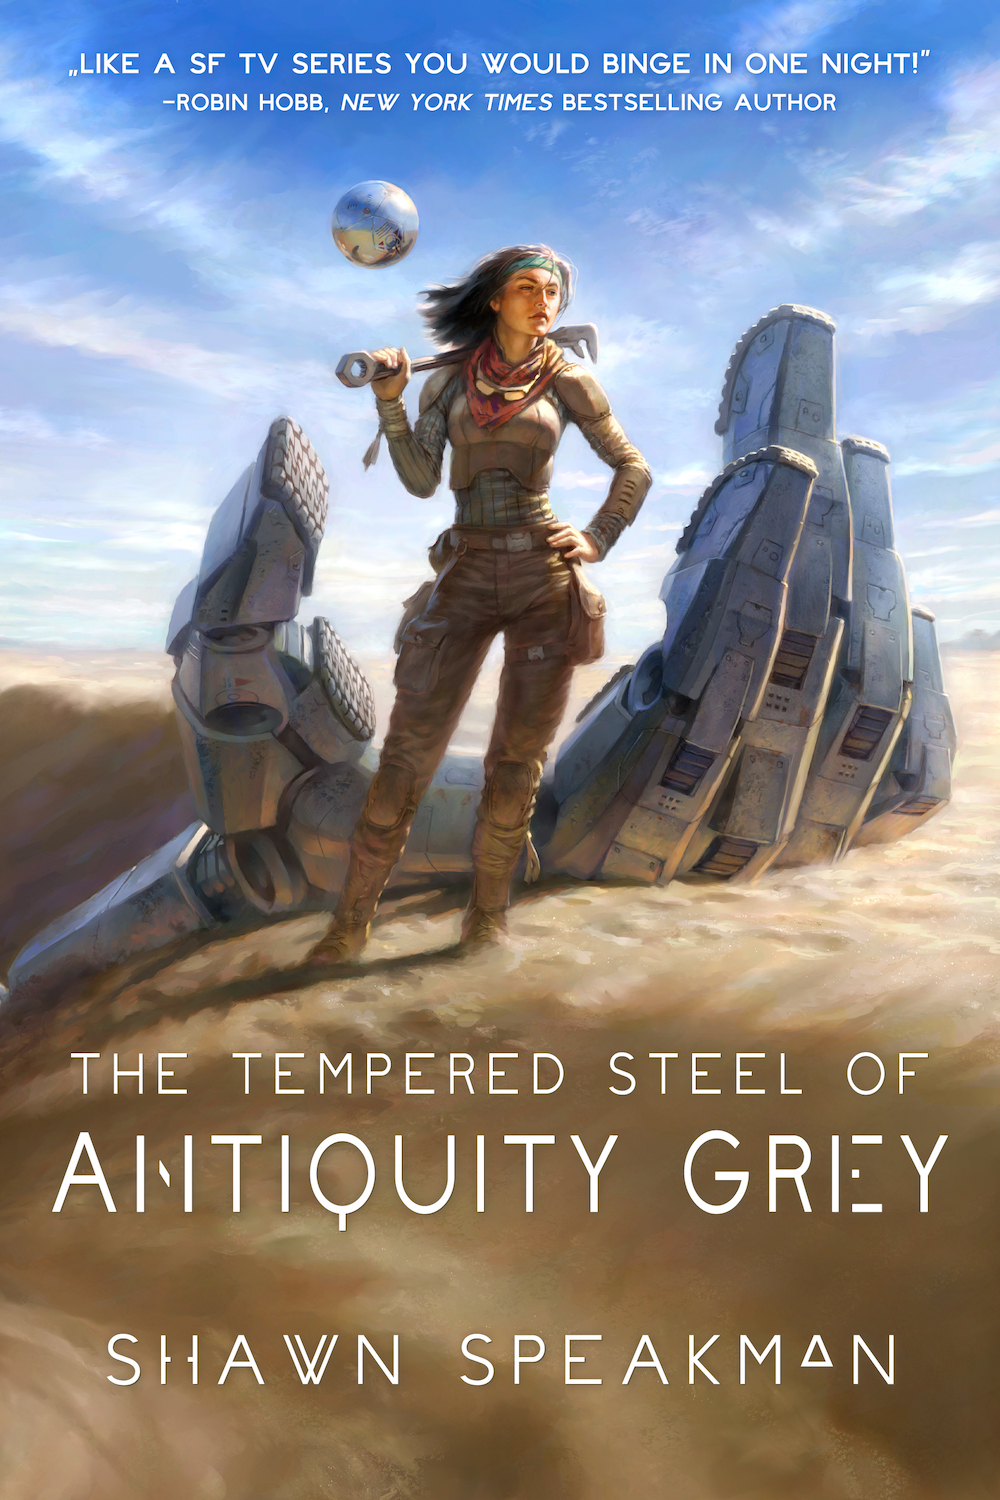 The Tempered Steel of Antiquity Grey by Shawn Speakman